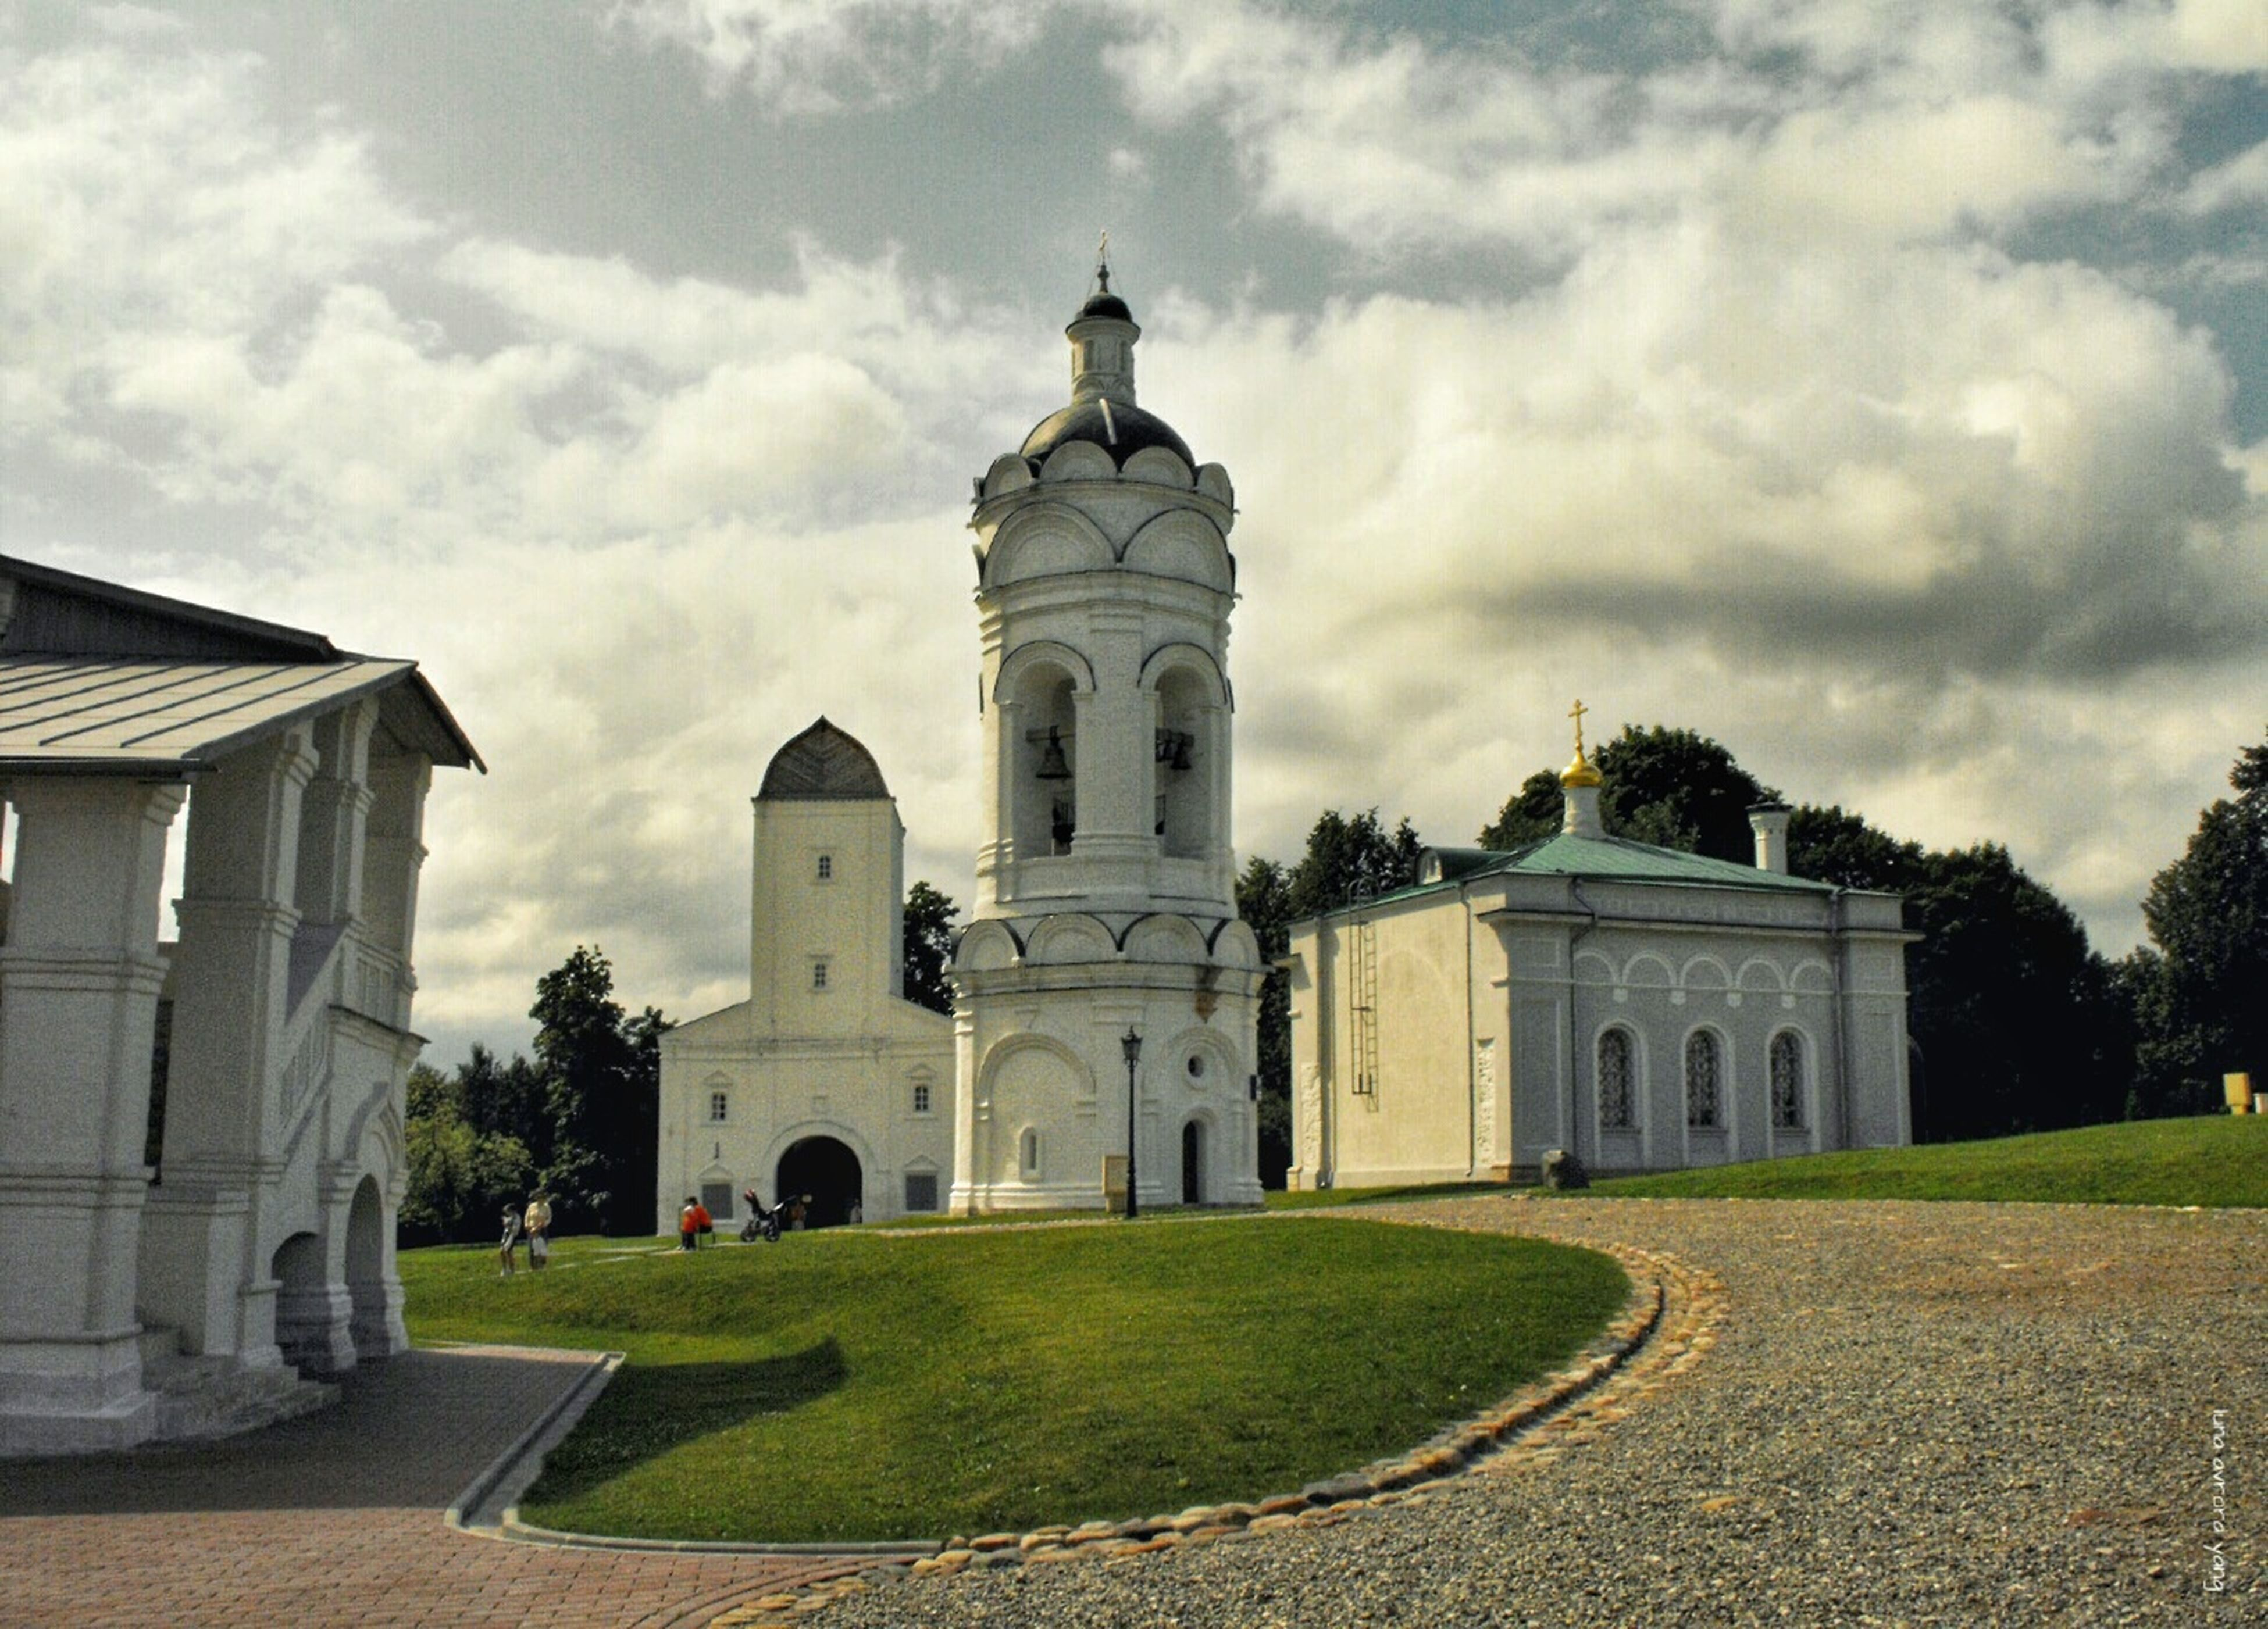 architecture, building exterior, built structure, sky, cloud - sky, grass, cloudy, history, cloud, lawn, church, facade, religion, dome, day, arch, outdoors, place of worship, tree, incidental people